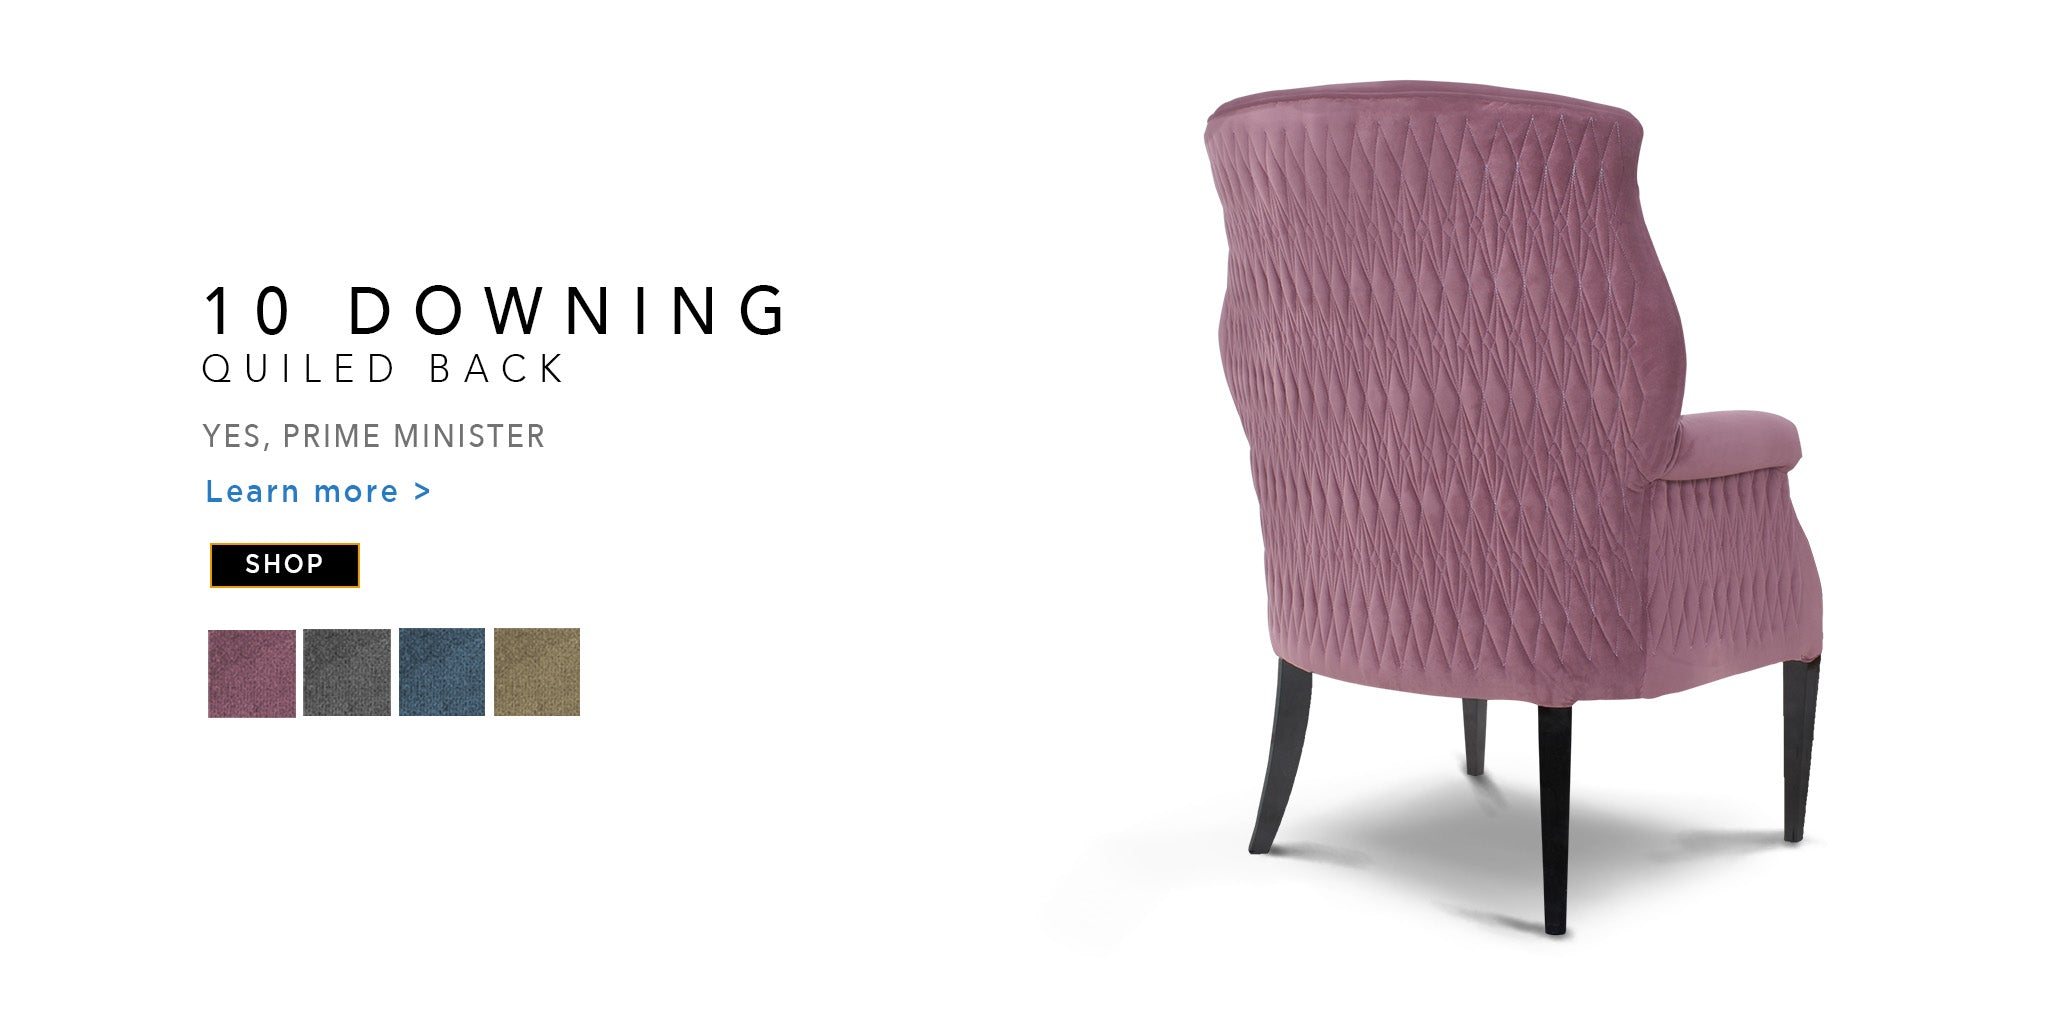 Counter Culture Classic Chair 10 Downing